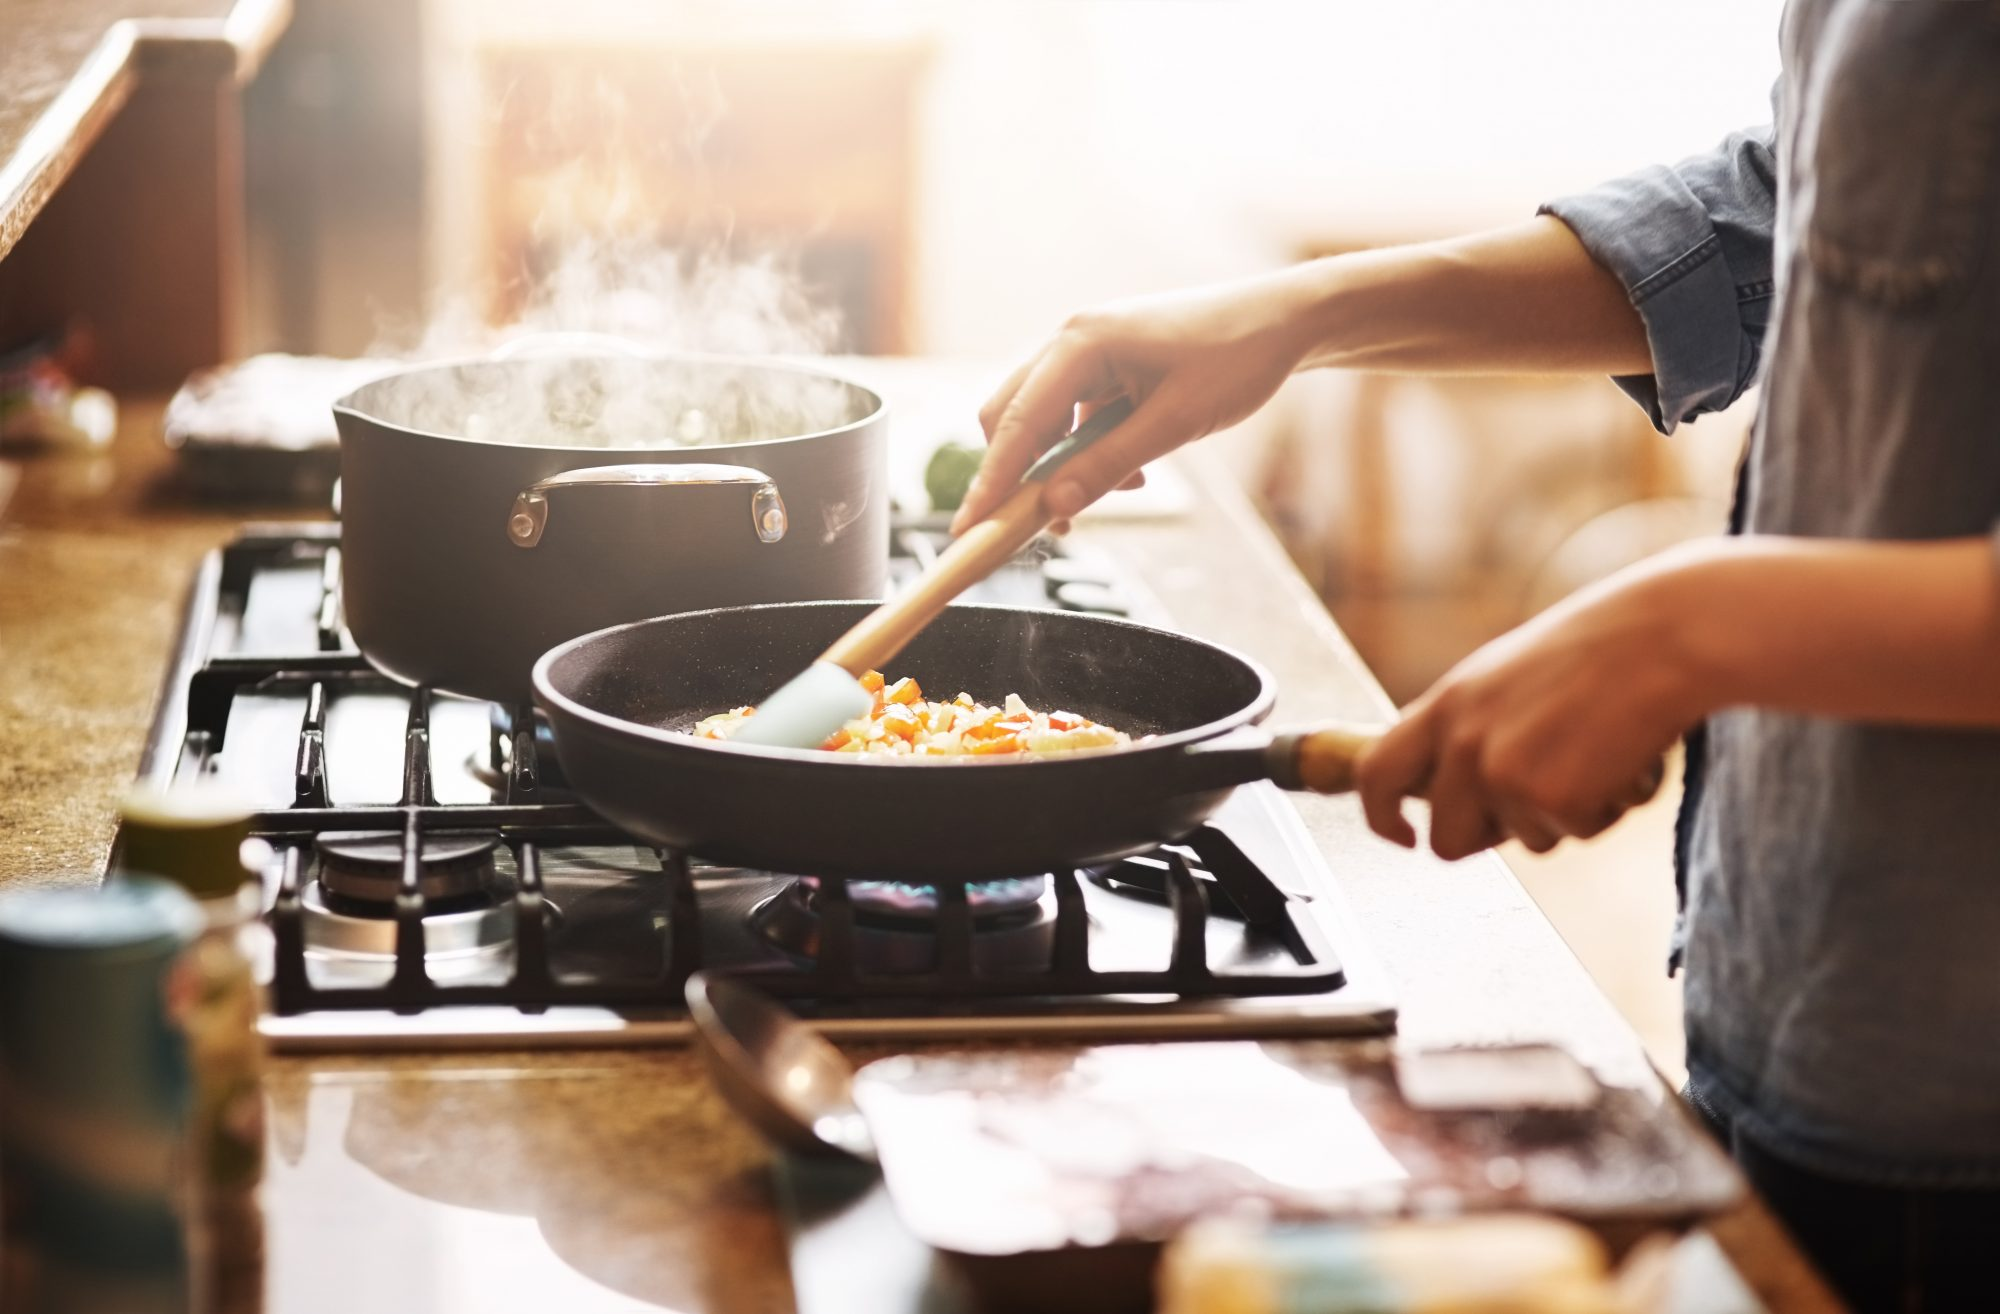 woman cooking meal on stove